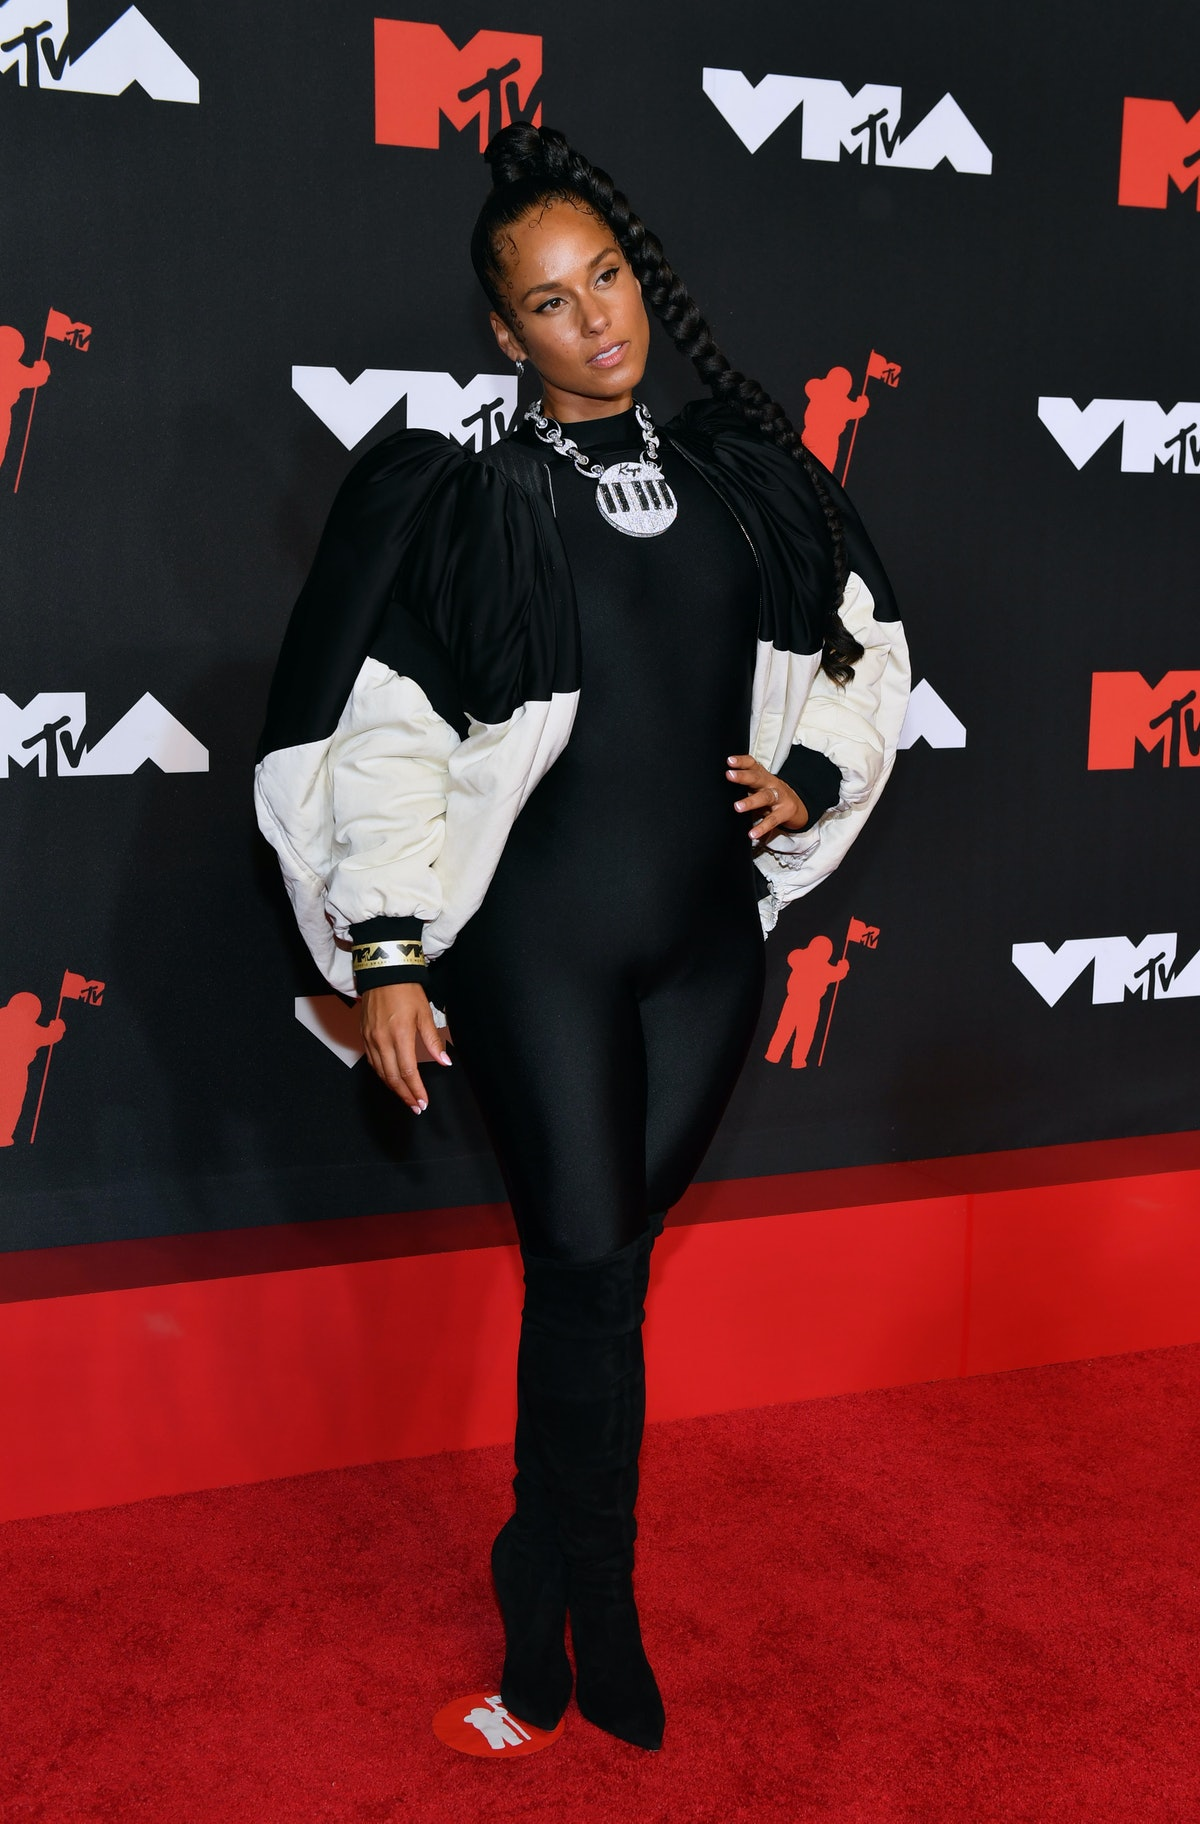 Alicia Keys attends the 2021 MTV Video Music Awards at Barclays Center on September 12, 2021 in the ...